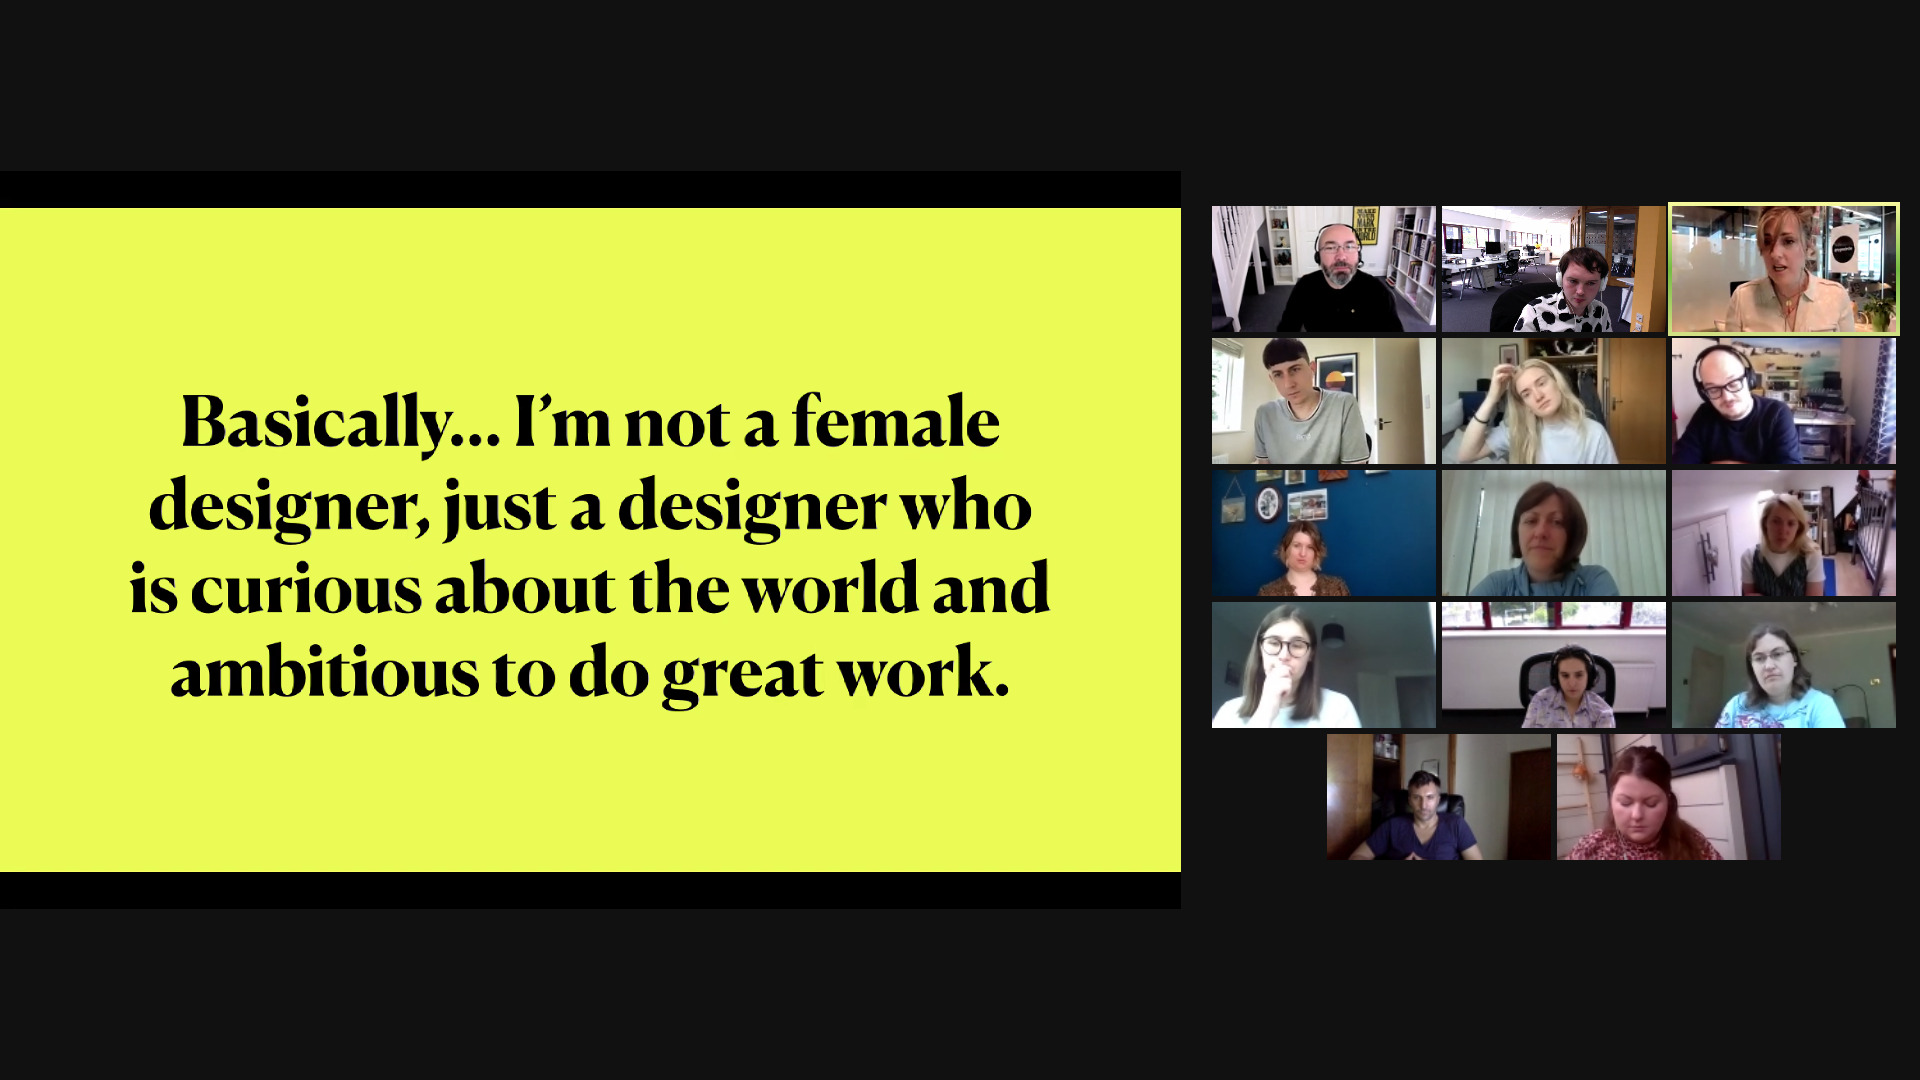 """A slide which reads """"Basically I'm not a female designer, just a designer who is curious about the world and ambitious to do great work"""", is displayed on a Zoom call"""